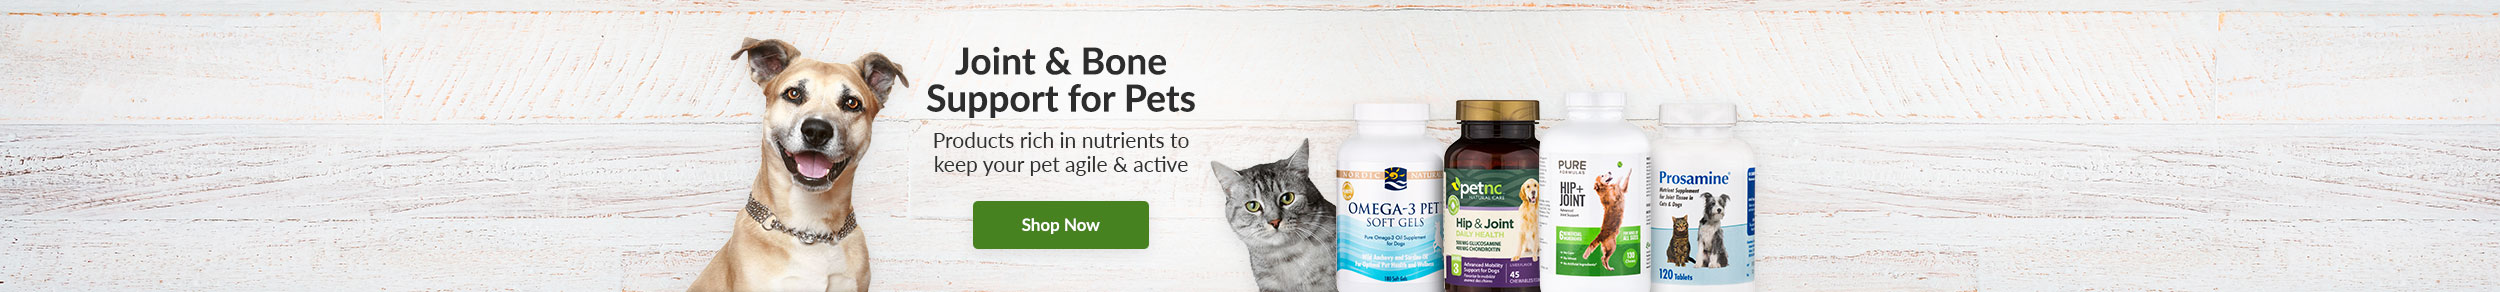 https://i3.pureformulas.net/images/static/Joint-and-Bone-Support-For-Pets_011419.jpg